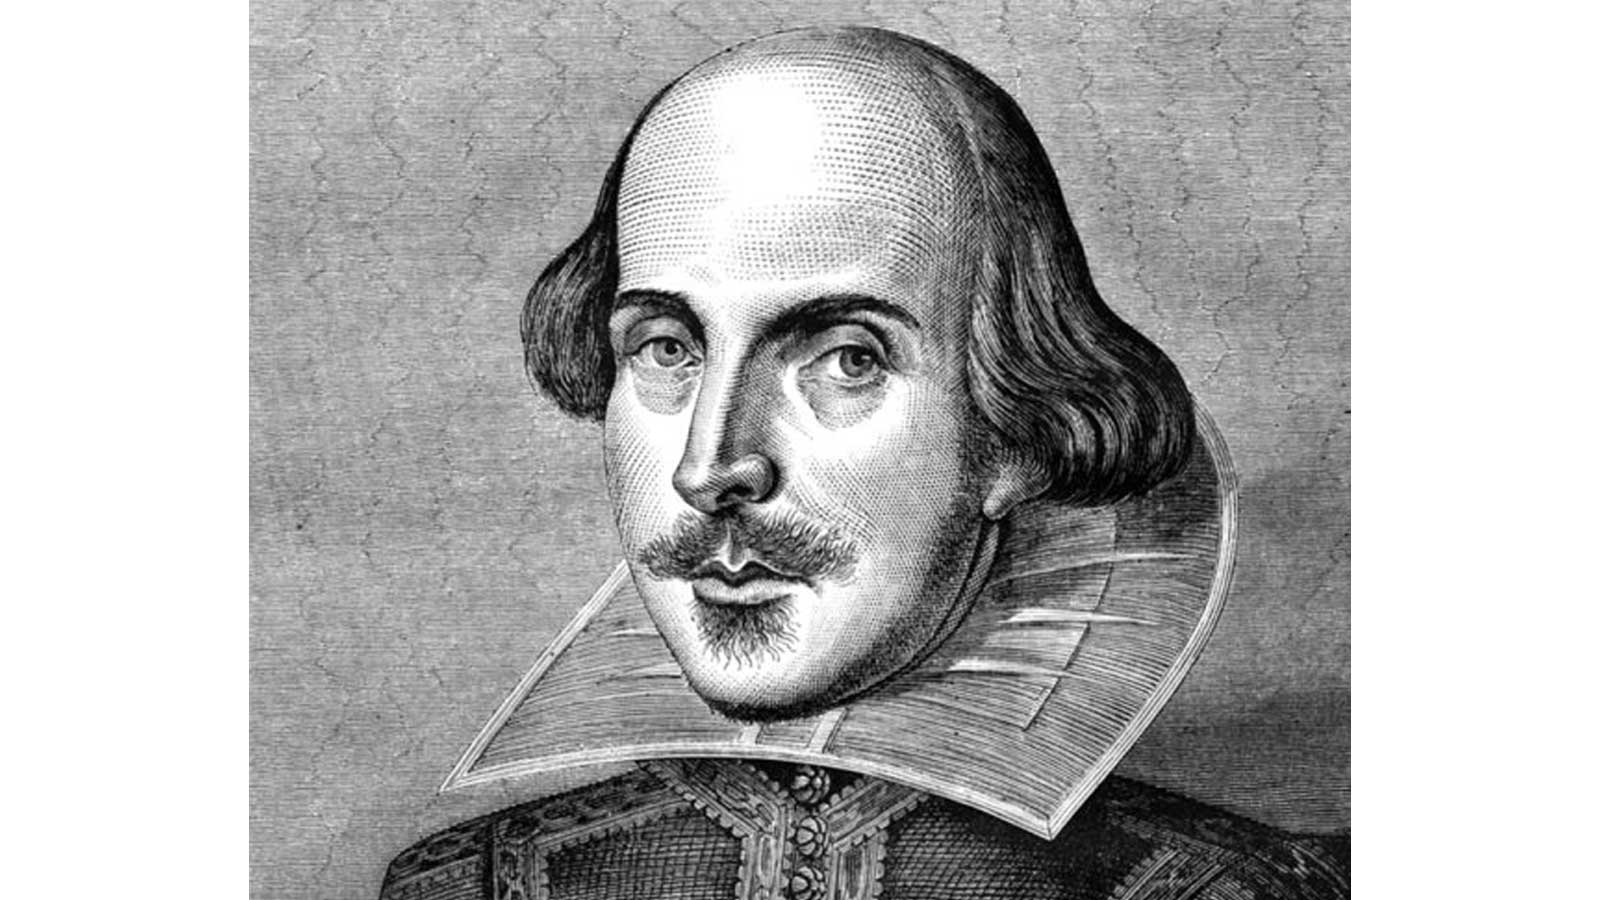 Black and white drawn portrait of Shakespeare